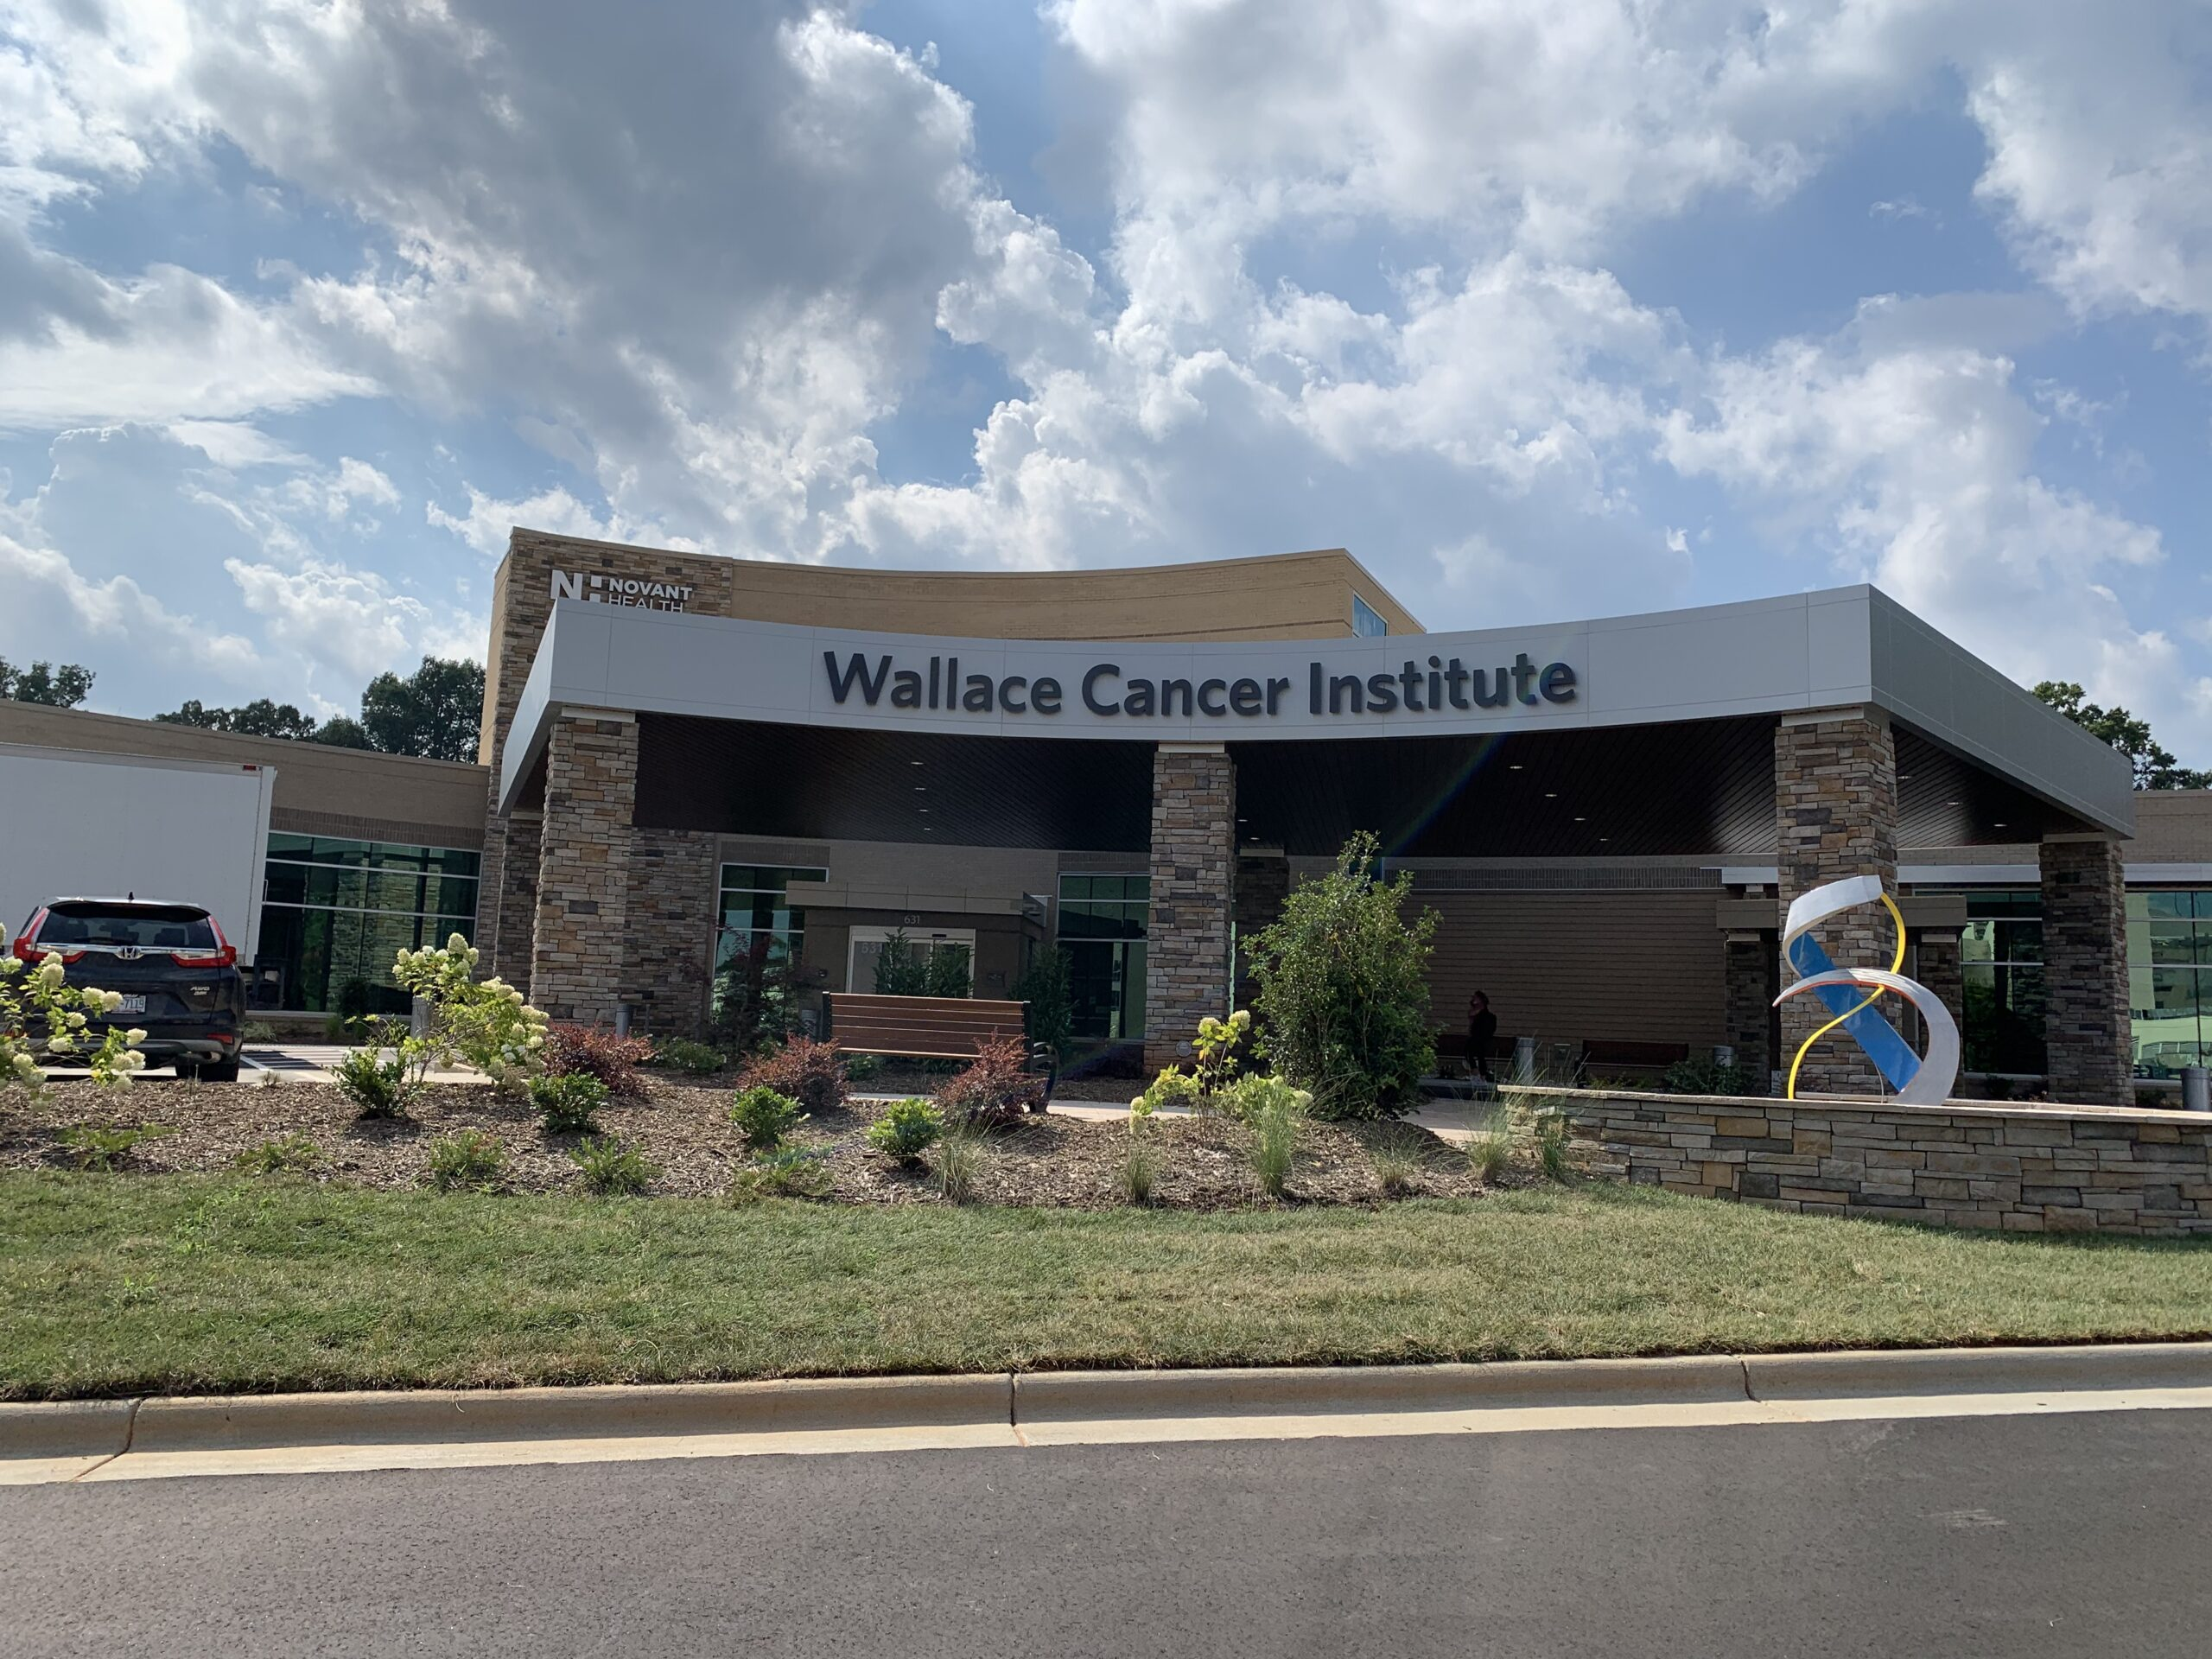 Exterior of Wallace Cancer Institute